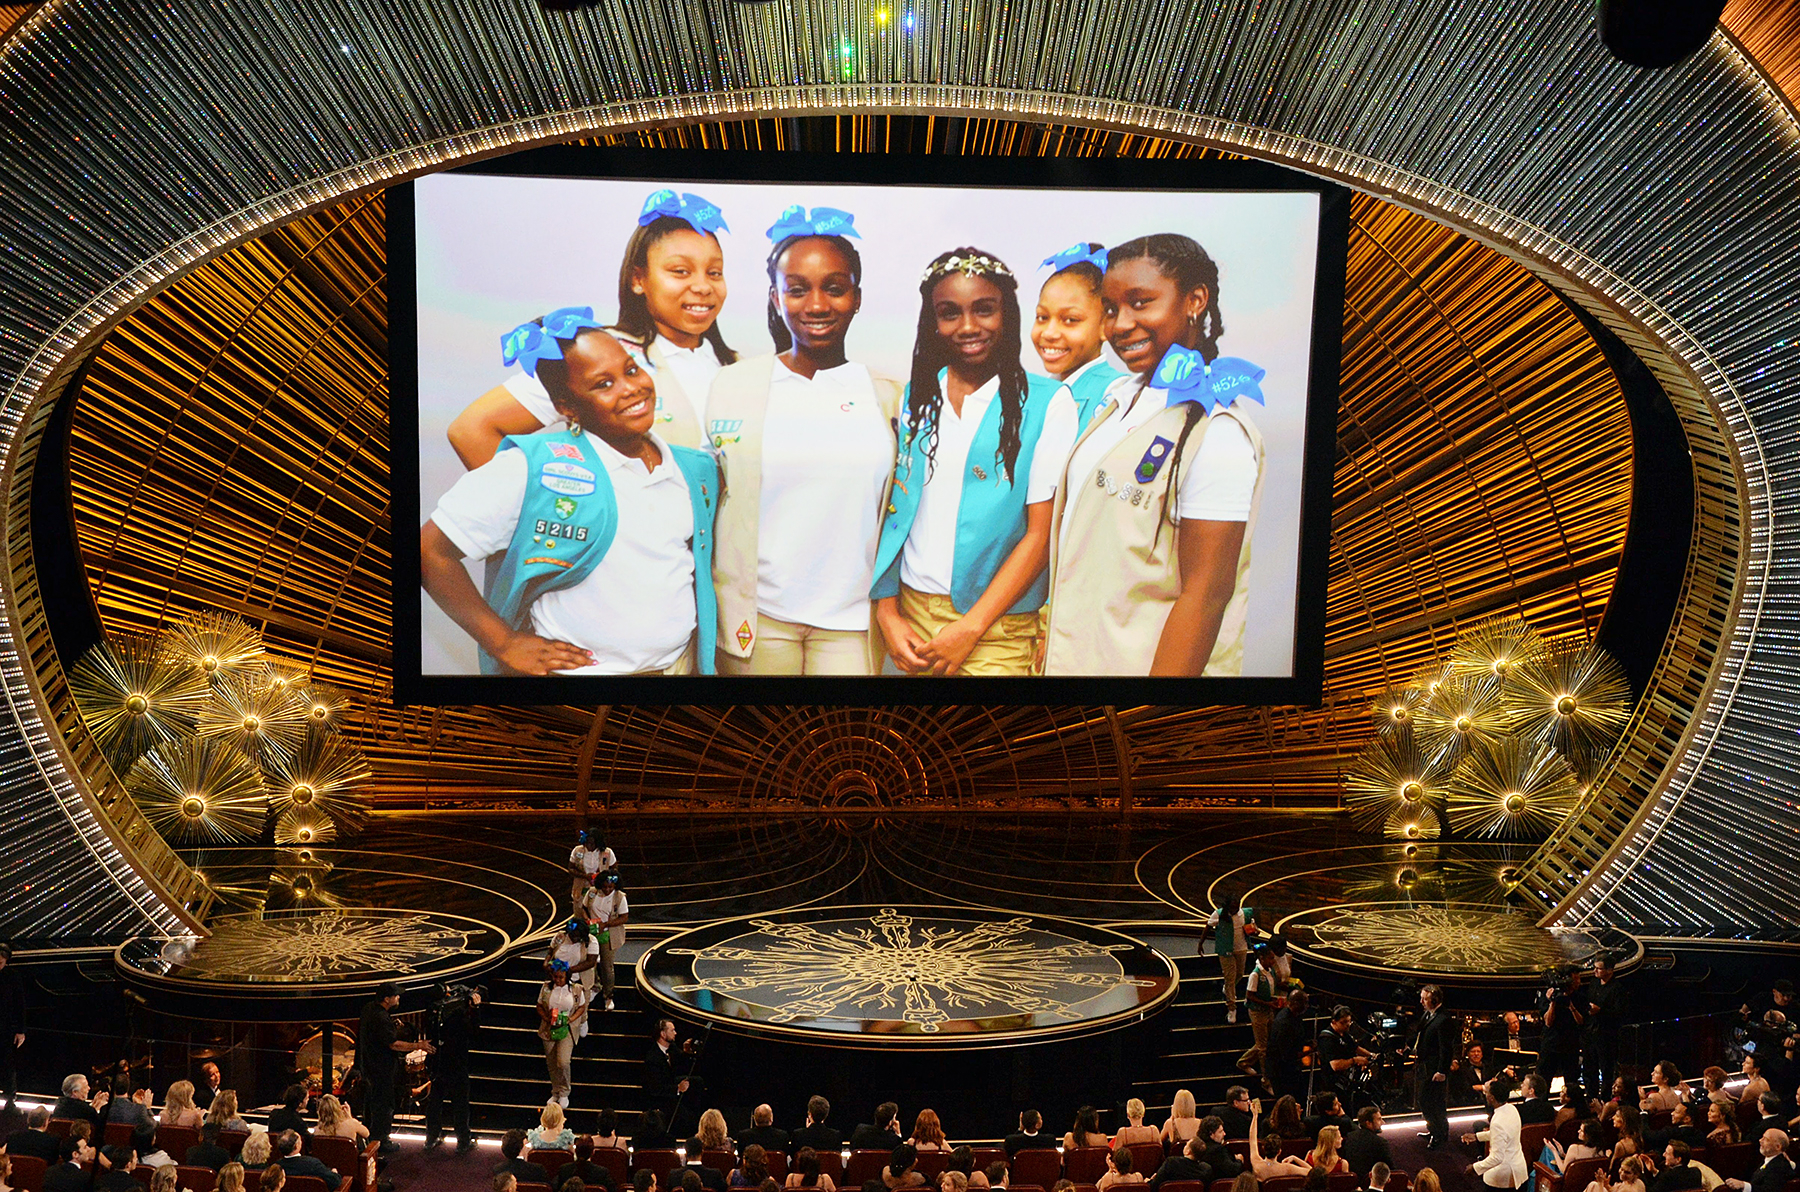 Girl Scouts at Oscars 2016